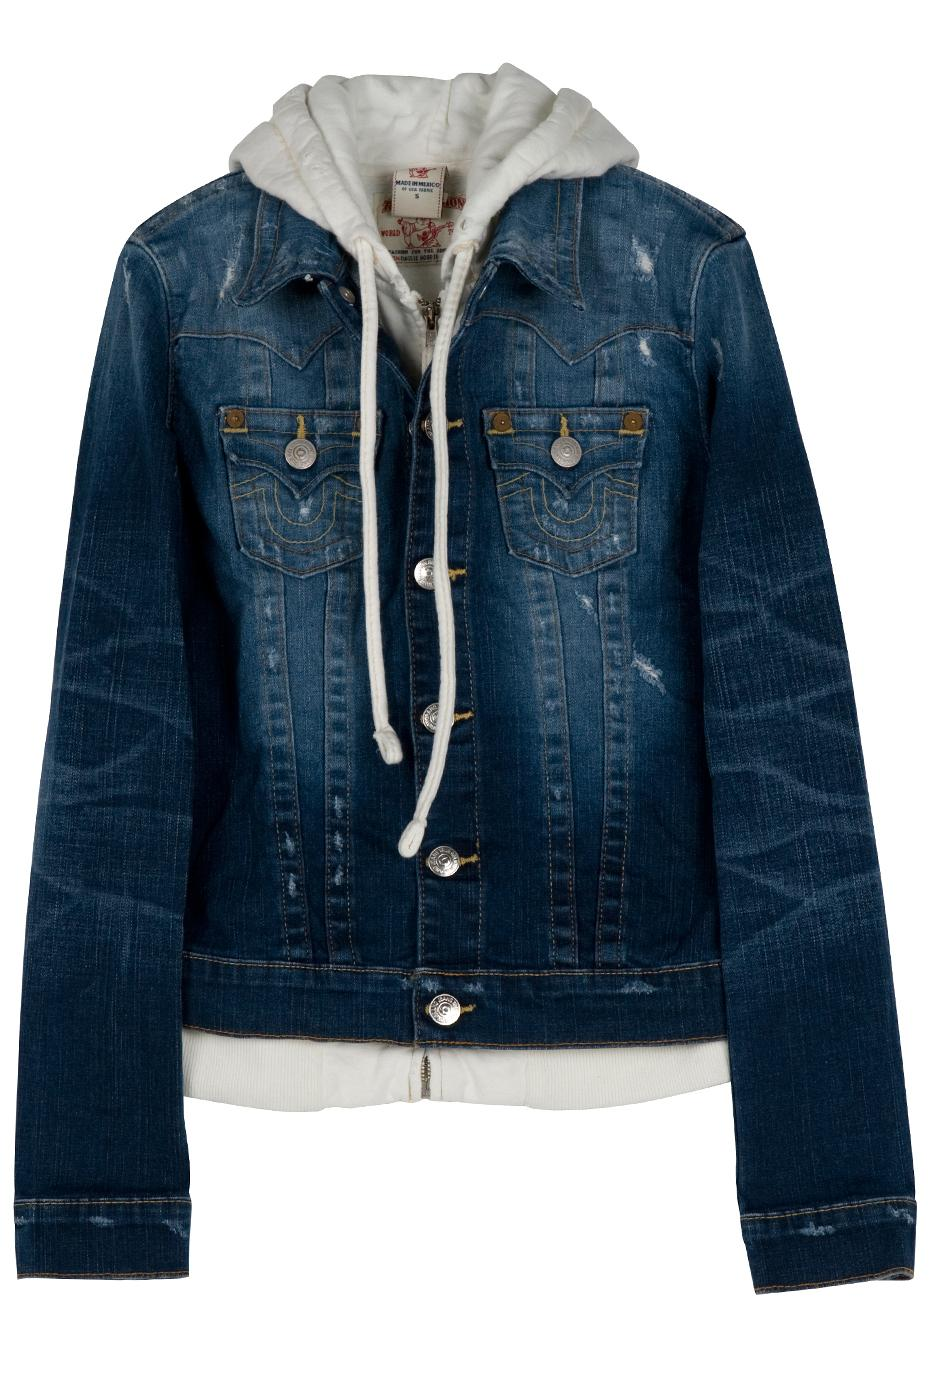 True religion women jackets